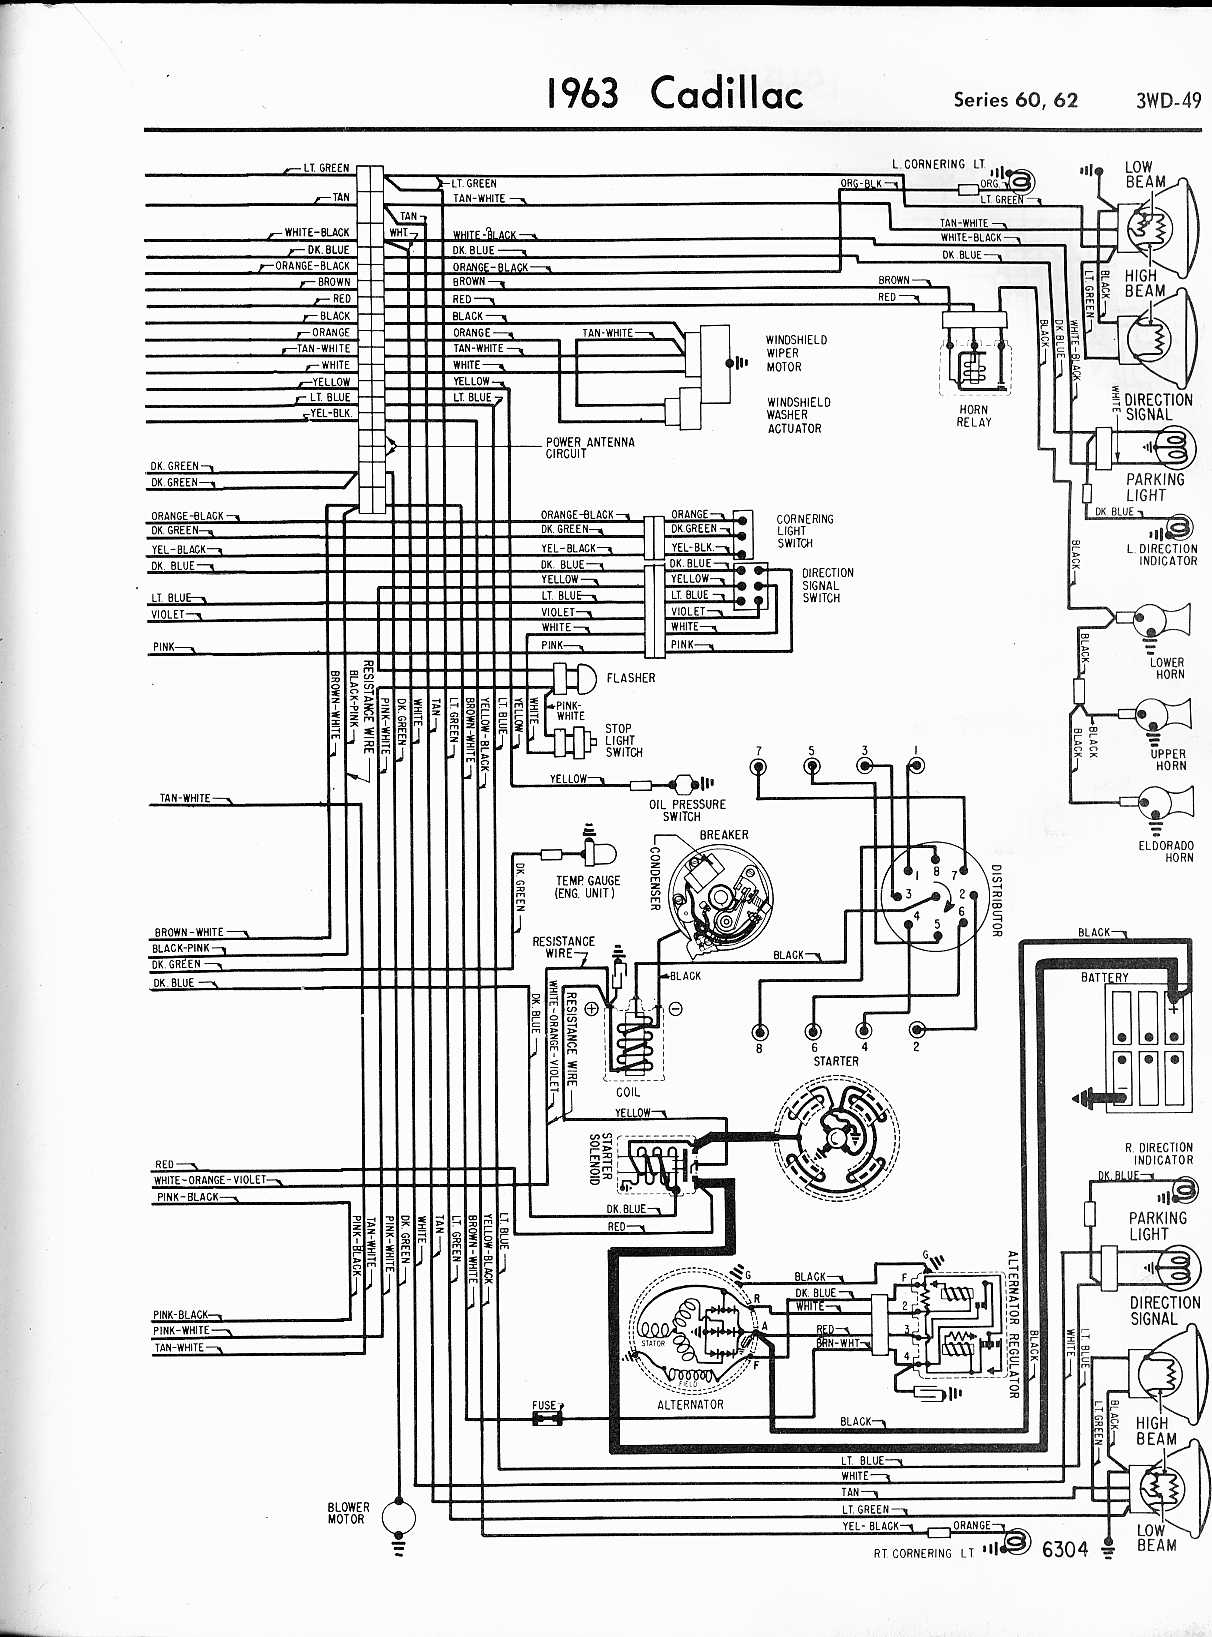 Blower Motor Wiring Diagram For 2007 Escalade Library Cadillac 1963 Series 60 62 Left Diagrams